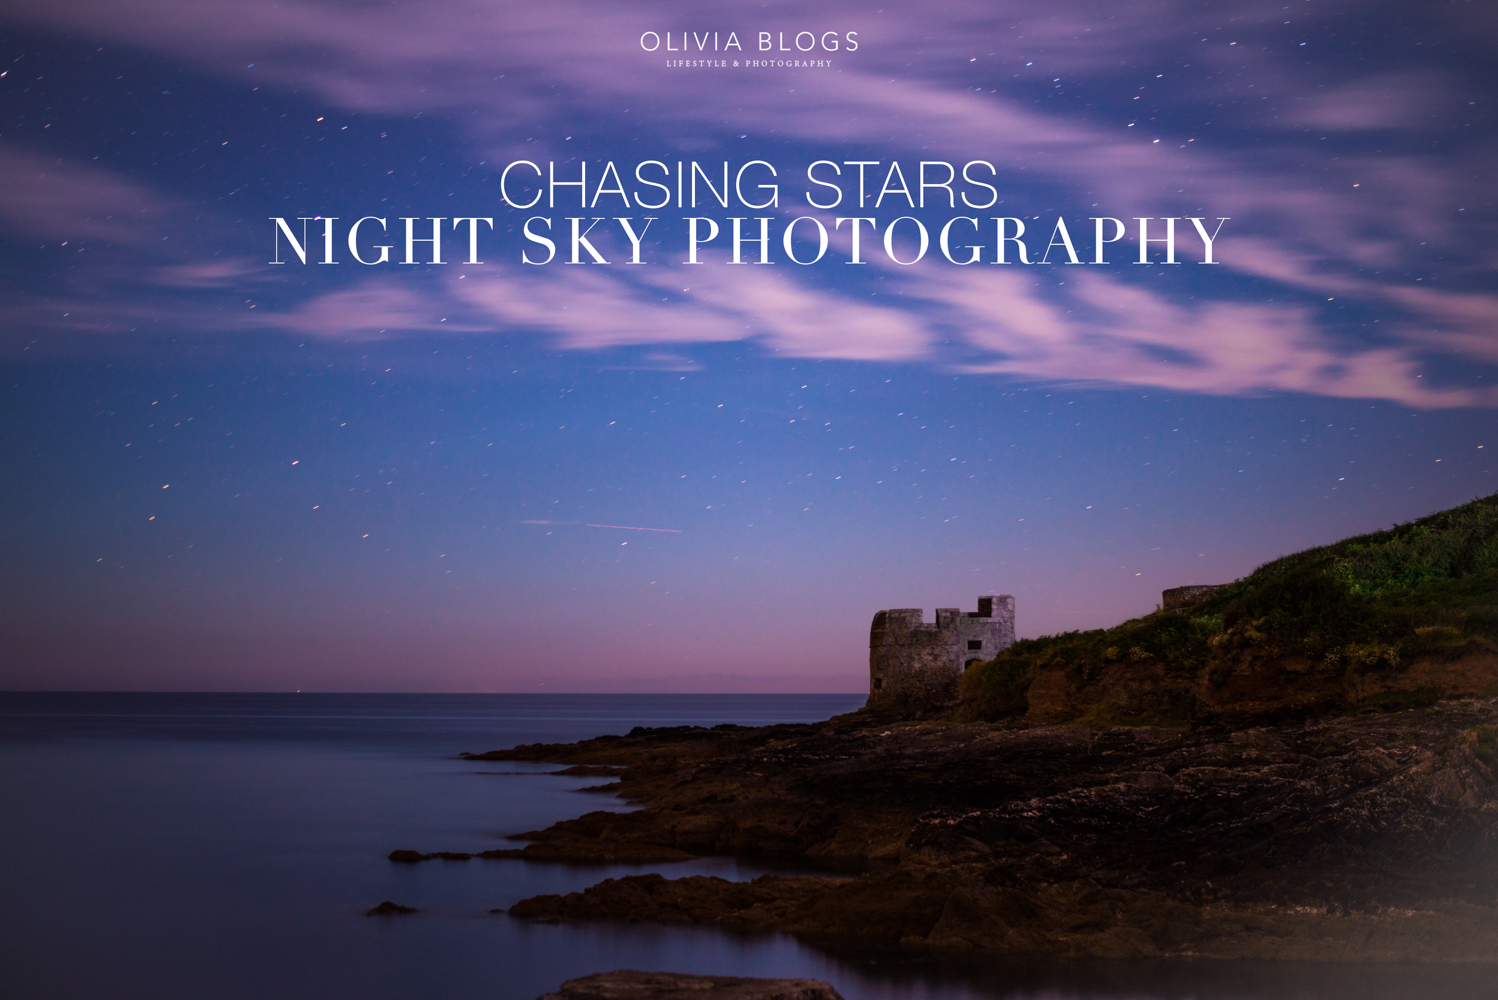 Chasing Stars | Night Sky Photography | Oliviablogs.com